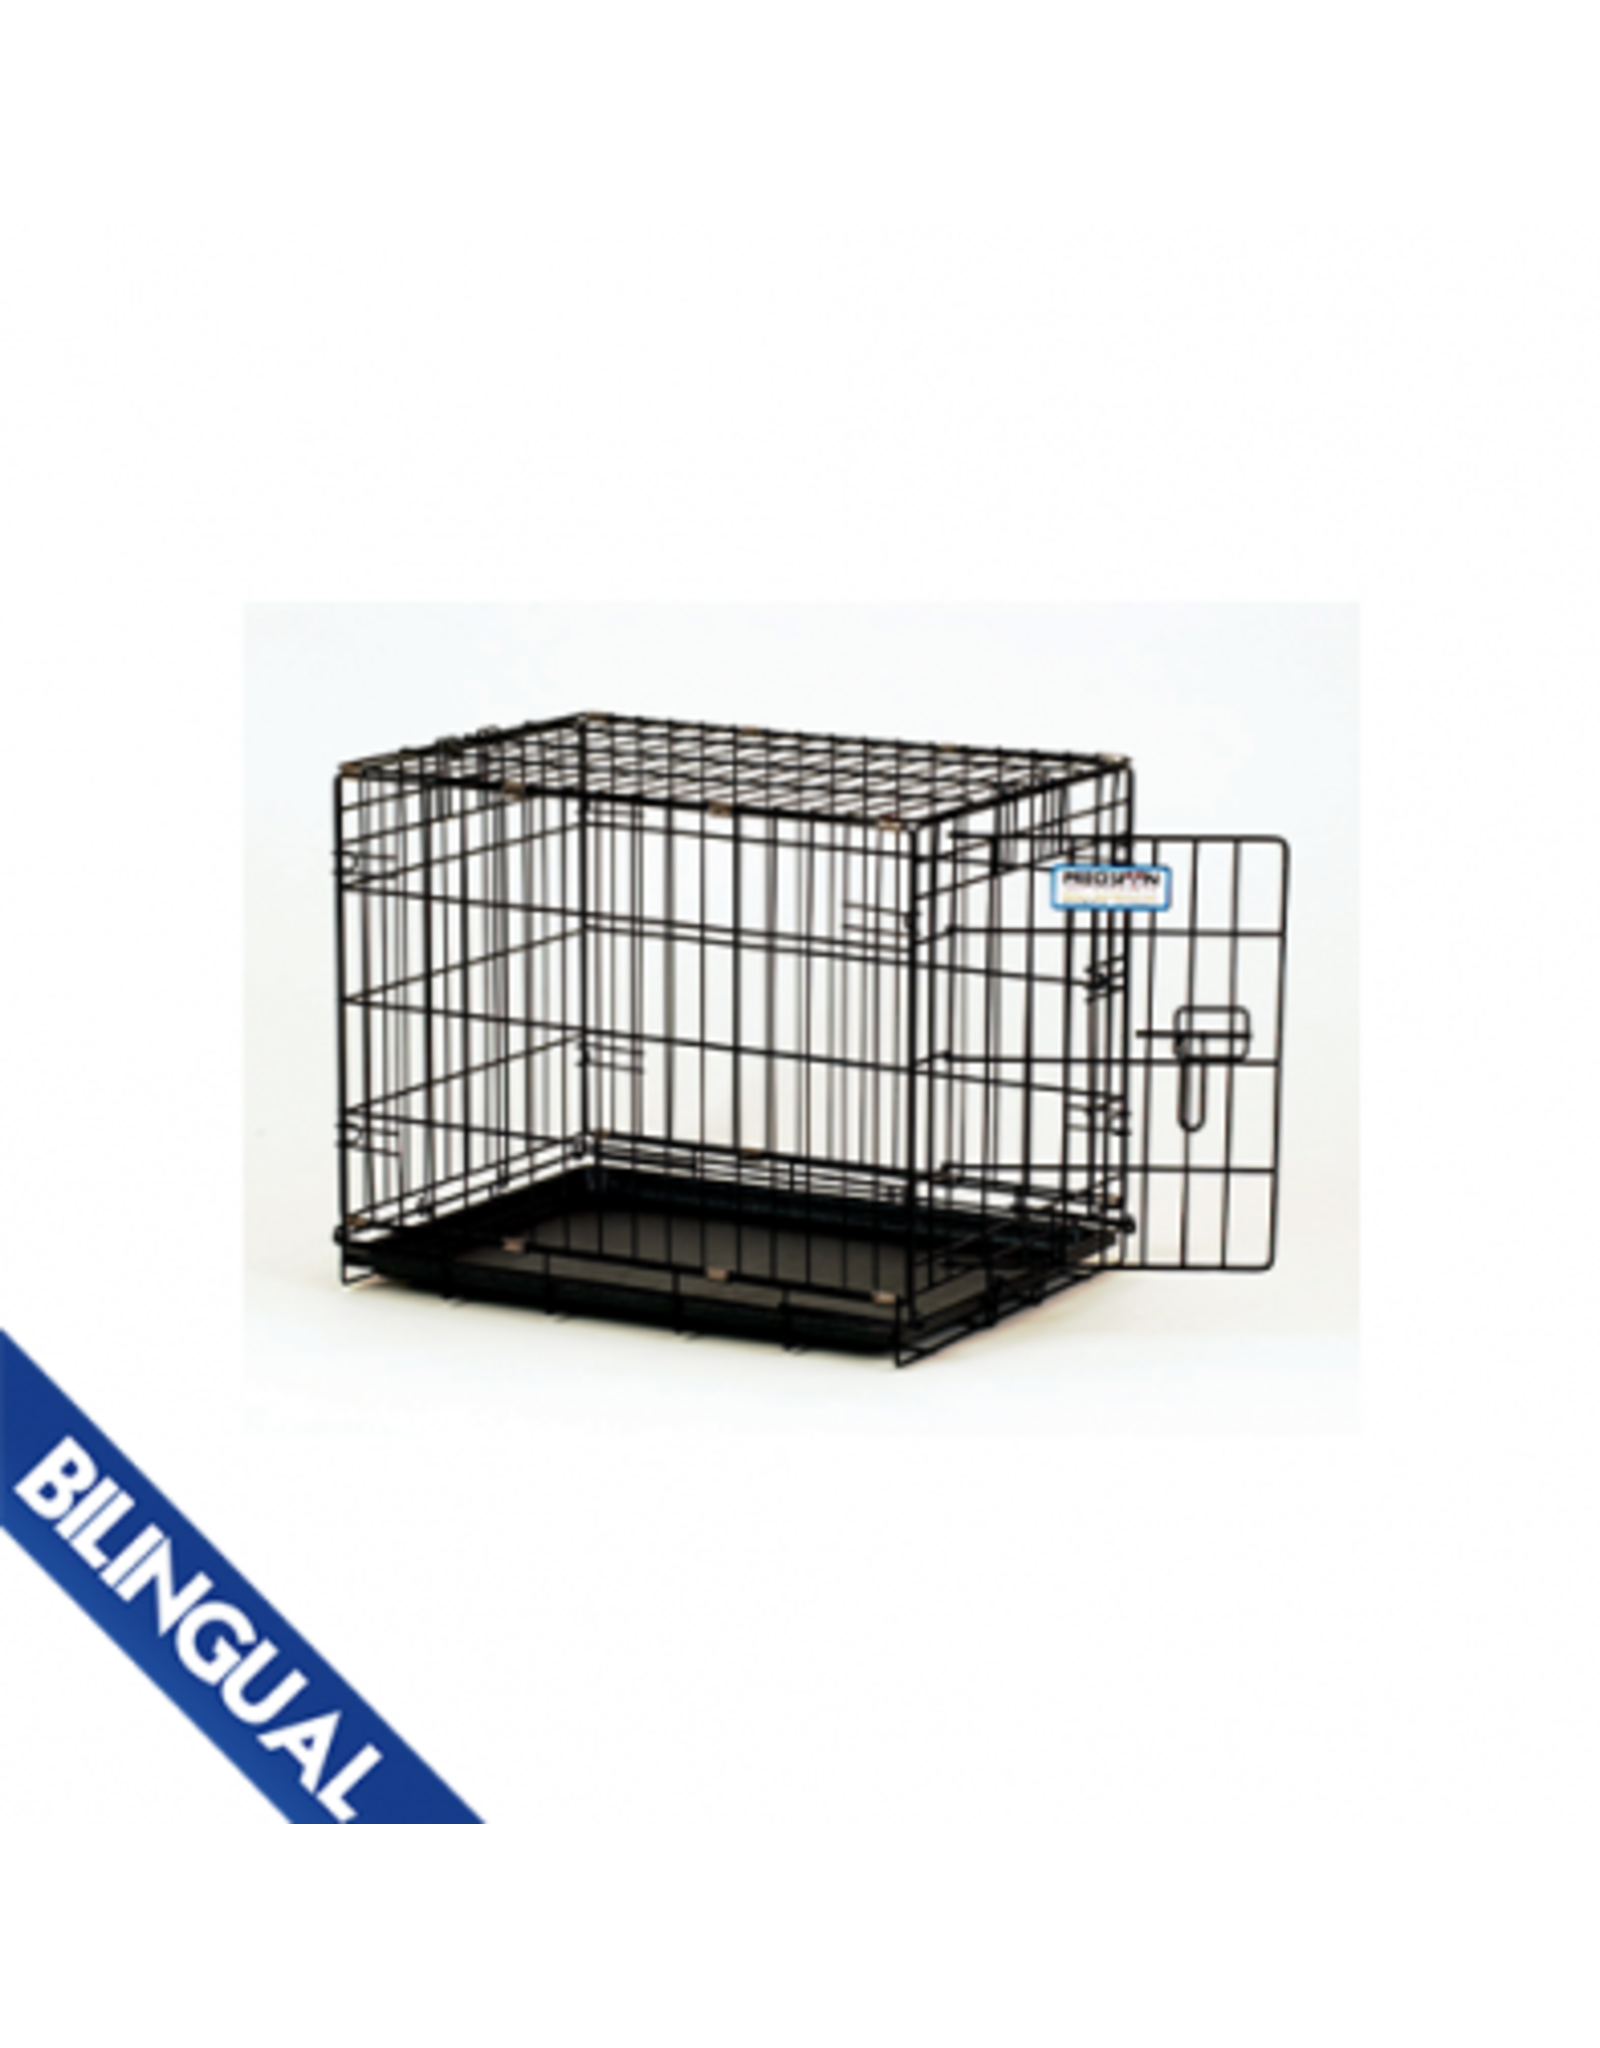 Precision Precision Dog Crate 2-Door - Black